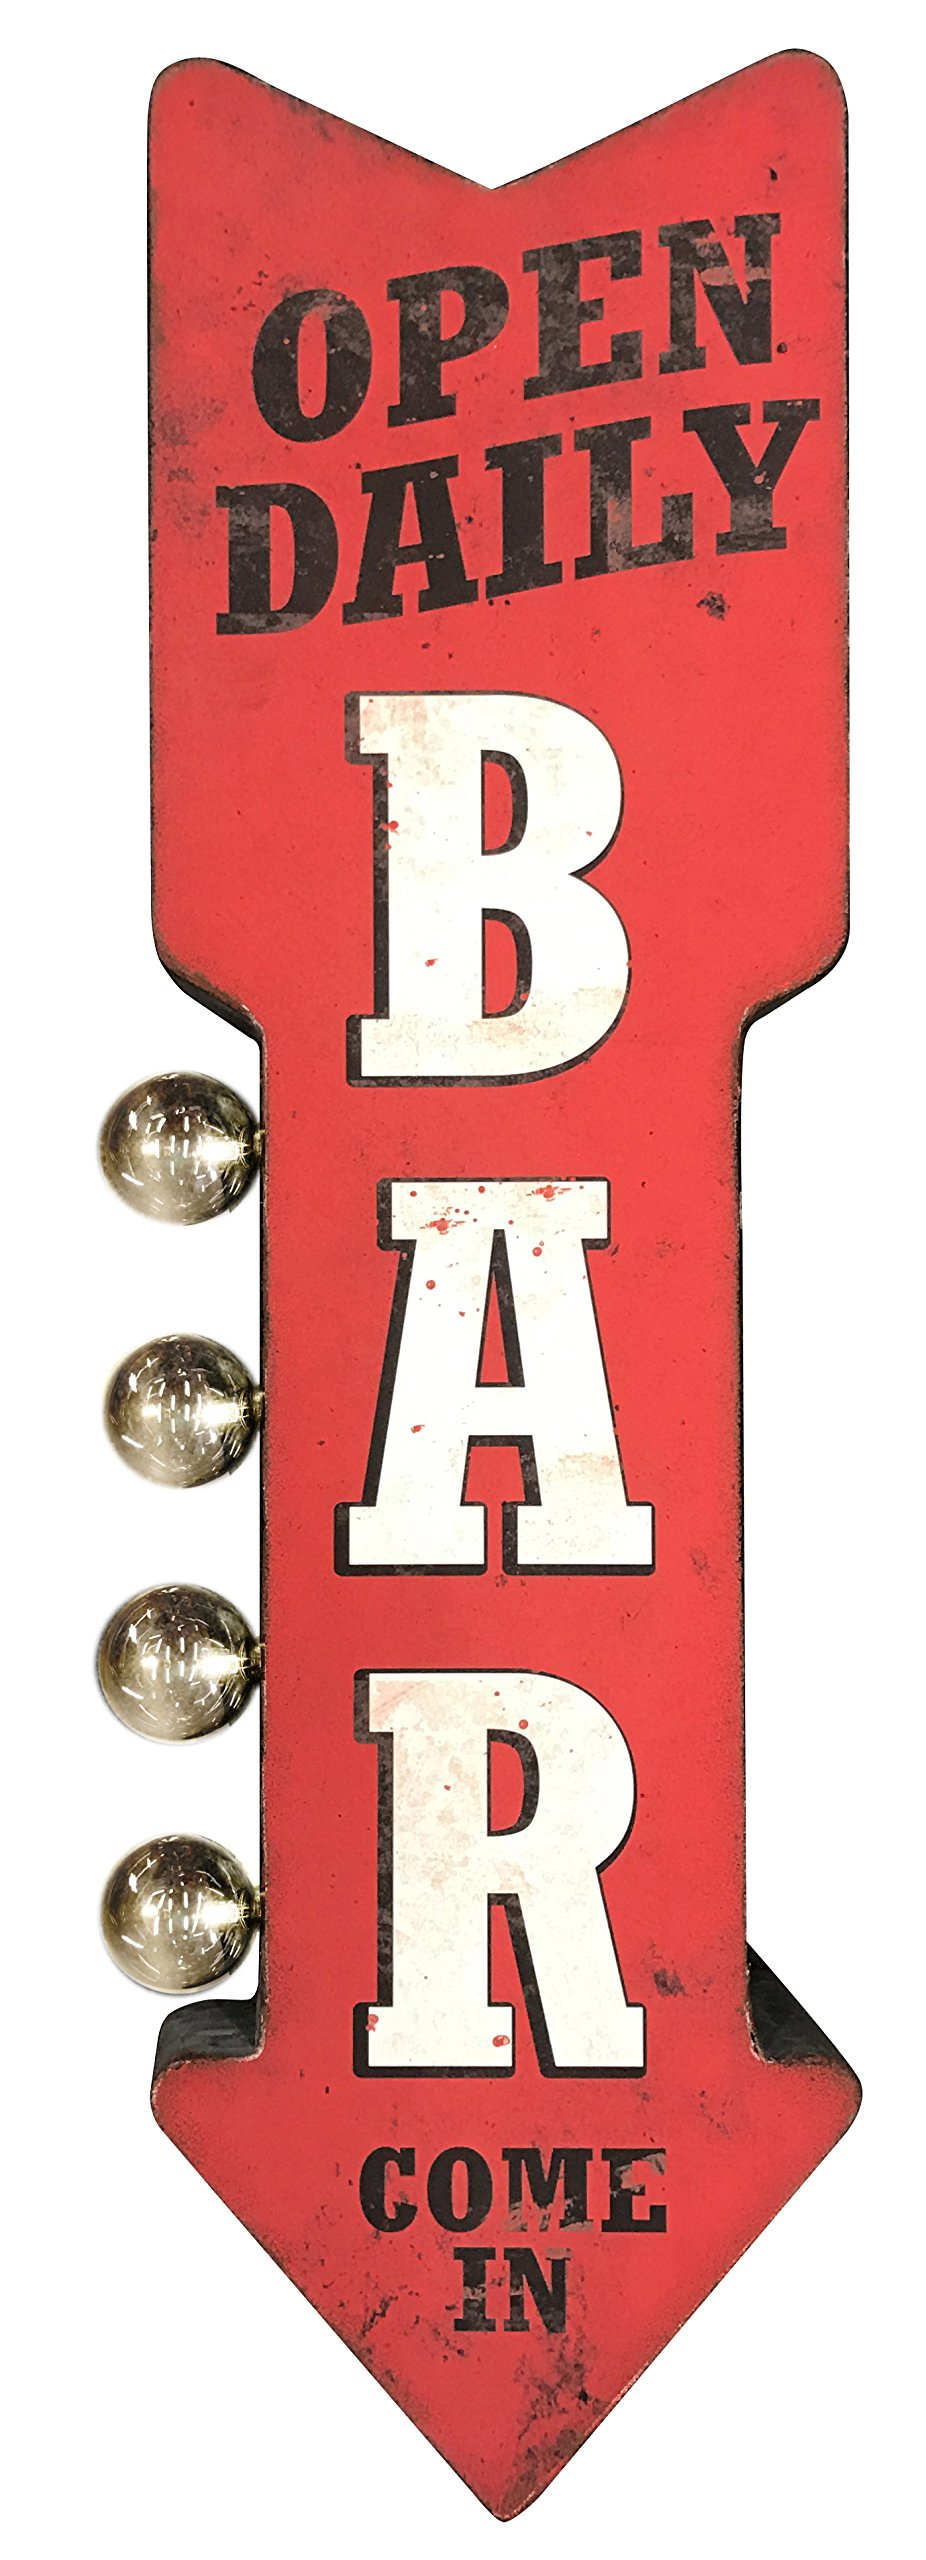 Bar Open Daily Reproduction Vintage Advertising Sign - Battery Powered LED Lights, Double Sided Metal Wall Mounted - 25 x 8 x 4 inches by SOTT